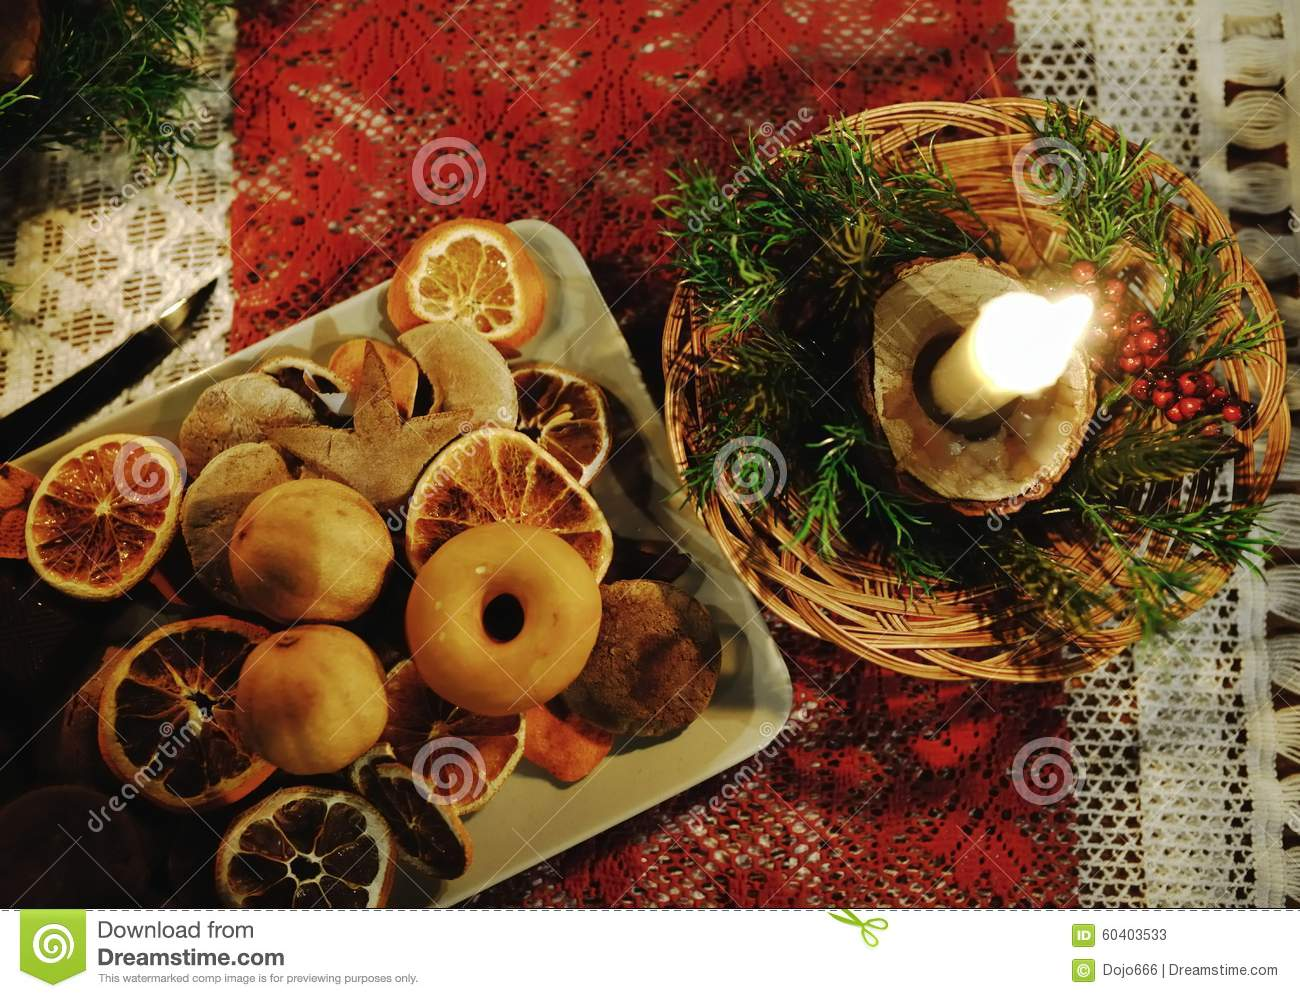 Christmas Tables Decorated Christmas Table Decorated With Typical Objects Stock Image